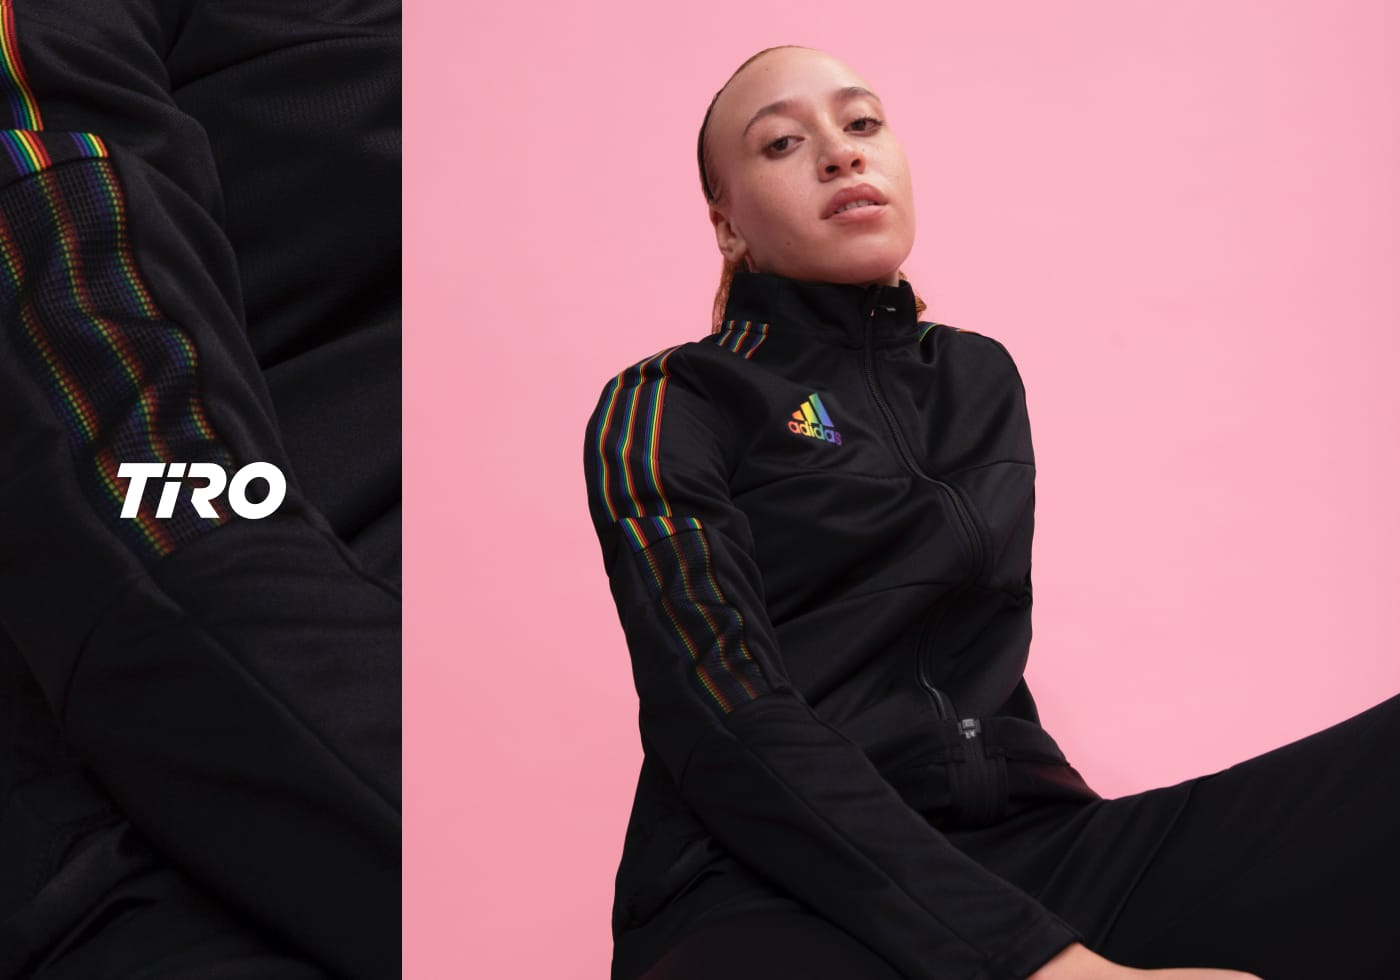 Woman wearing the key outfit from the TIRO 21 Pride Pack from adidas. Spring/Summer 21.